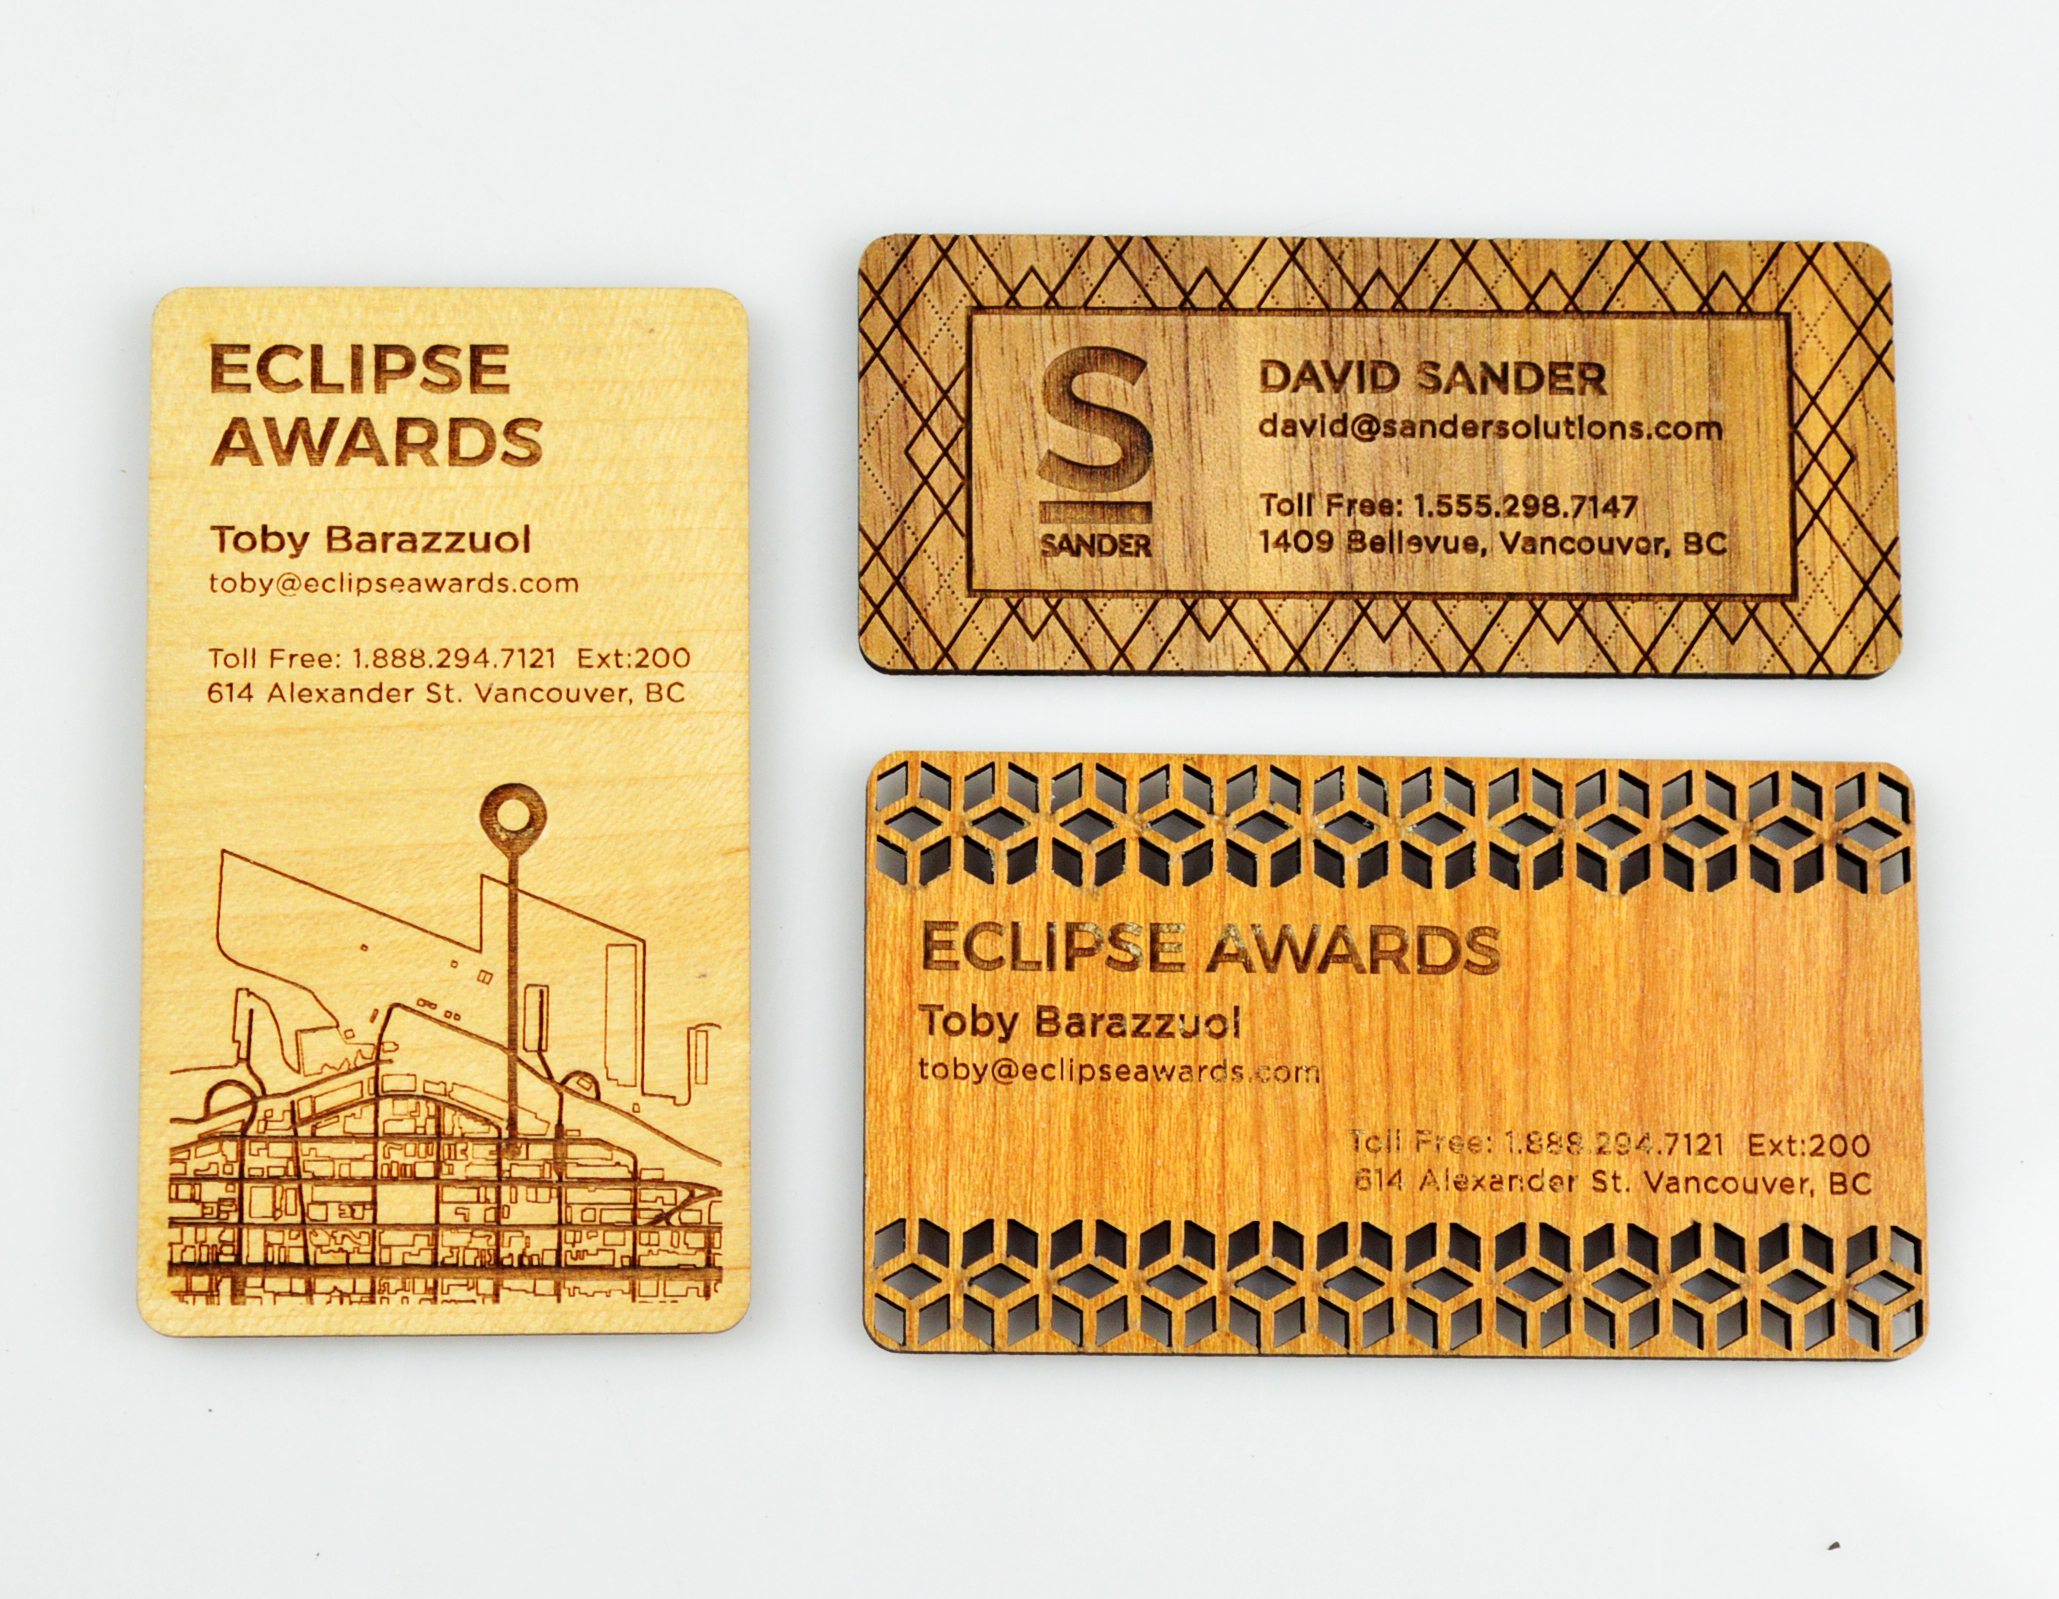 custom-awards_unique_sunwood_business-cards_personalized_laser-cut_eco-friendly_corporate_north-america